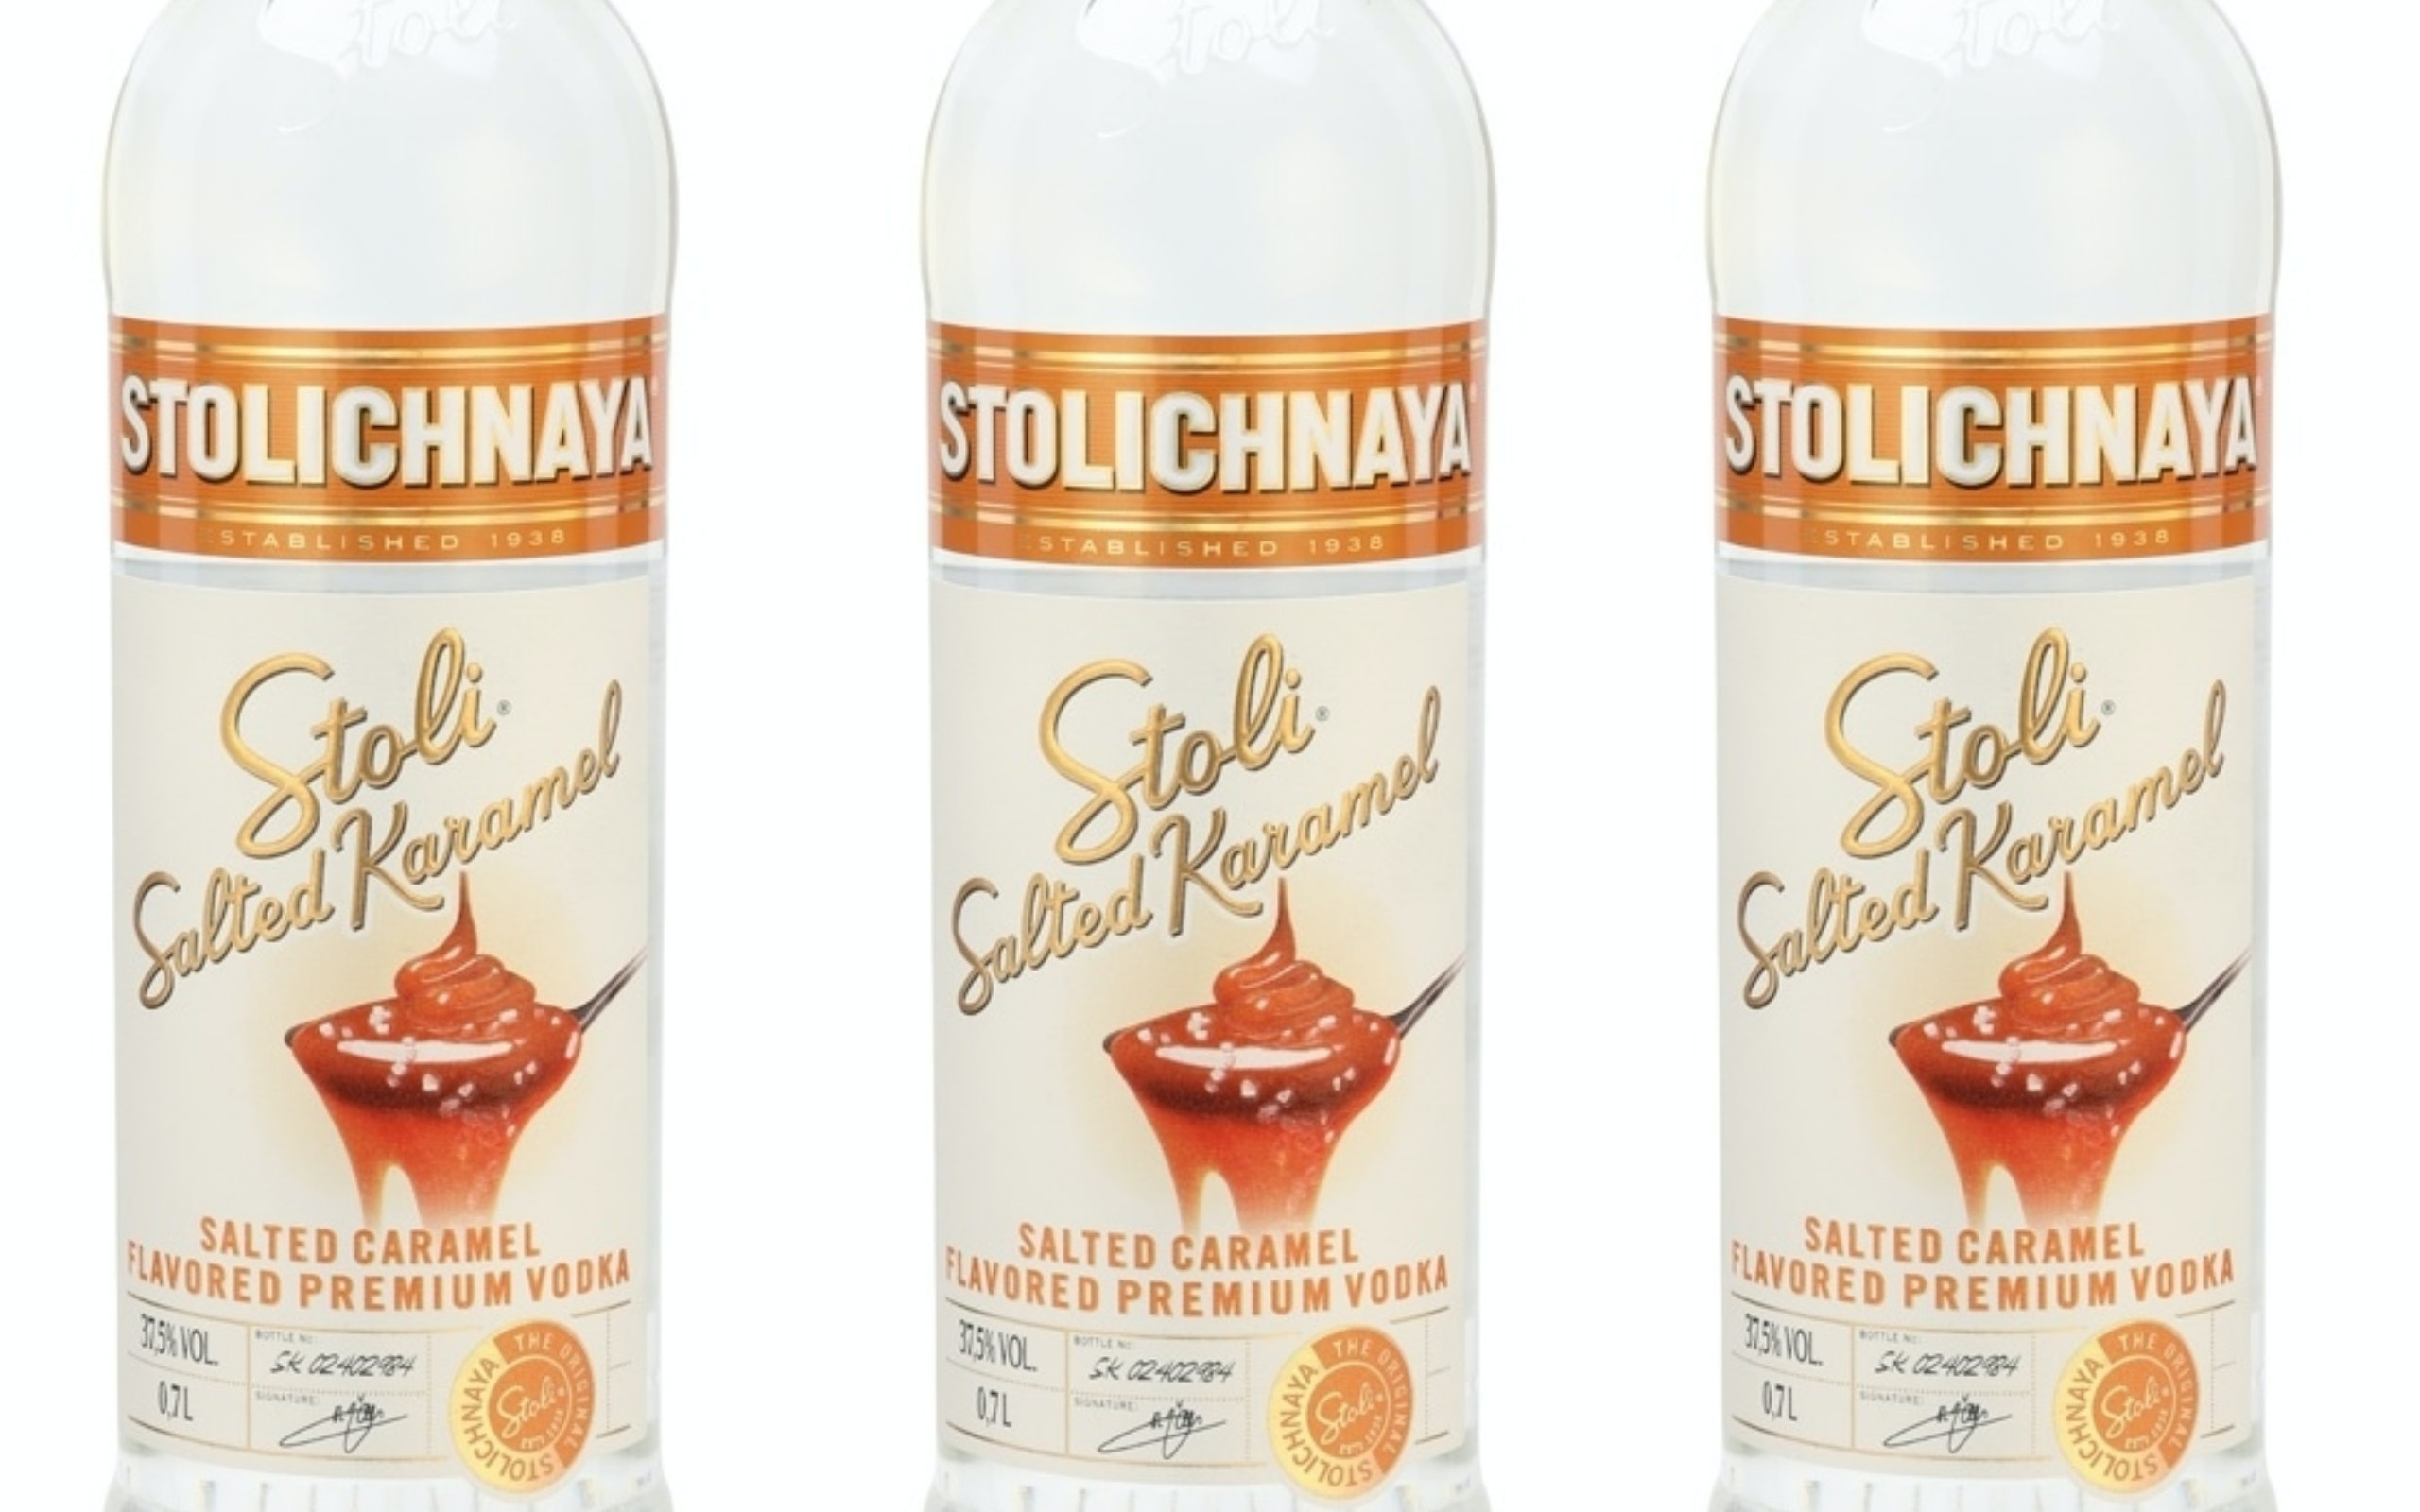 Stolichnaya Salted Caramel Vodka Is Here To Up Your Fall Drinks